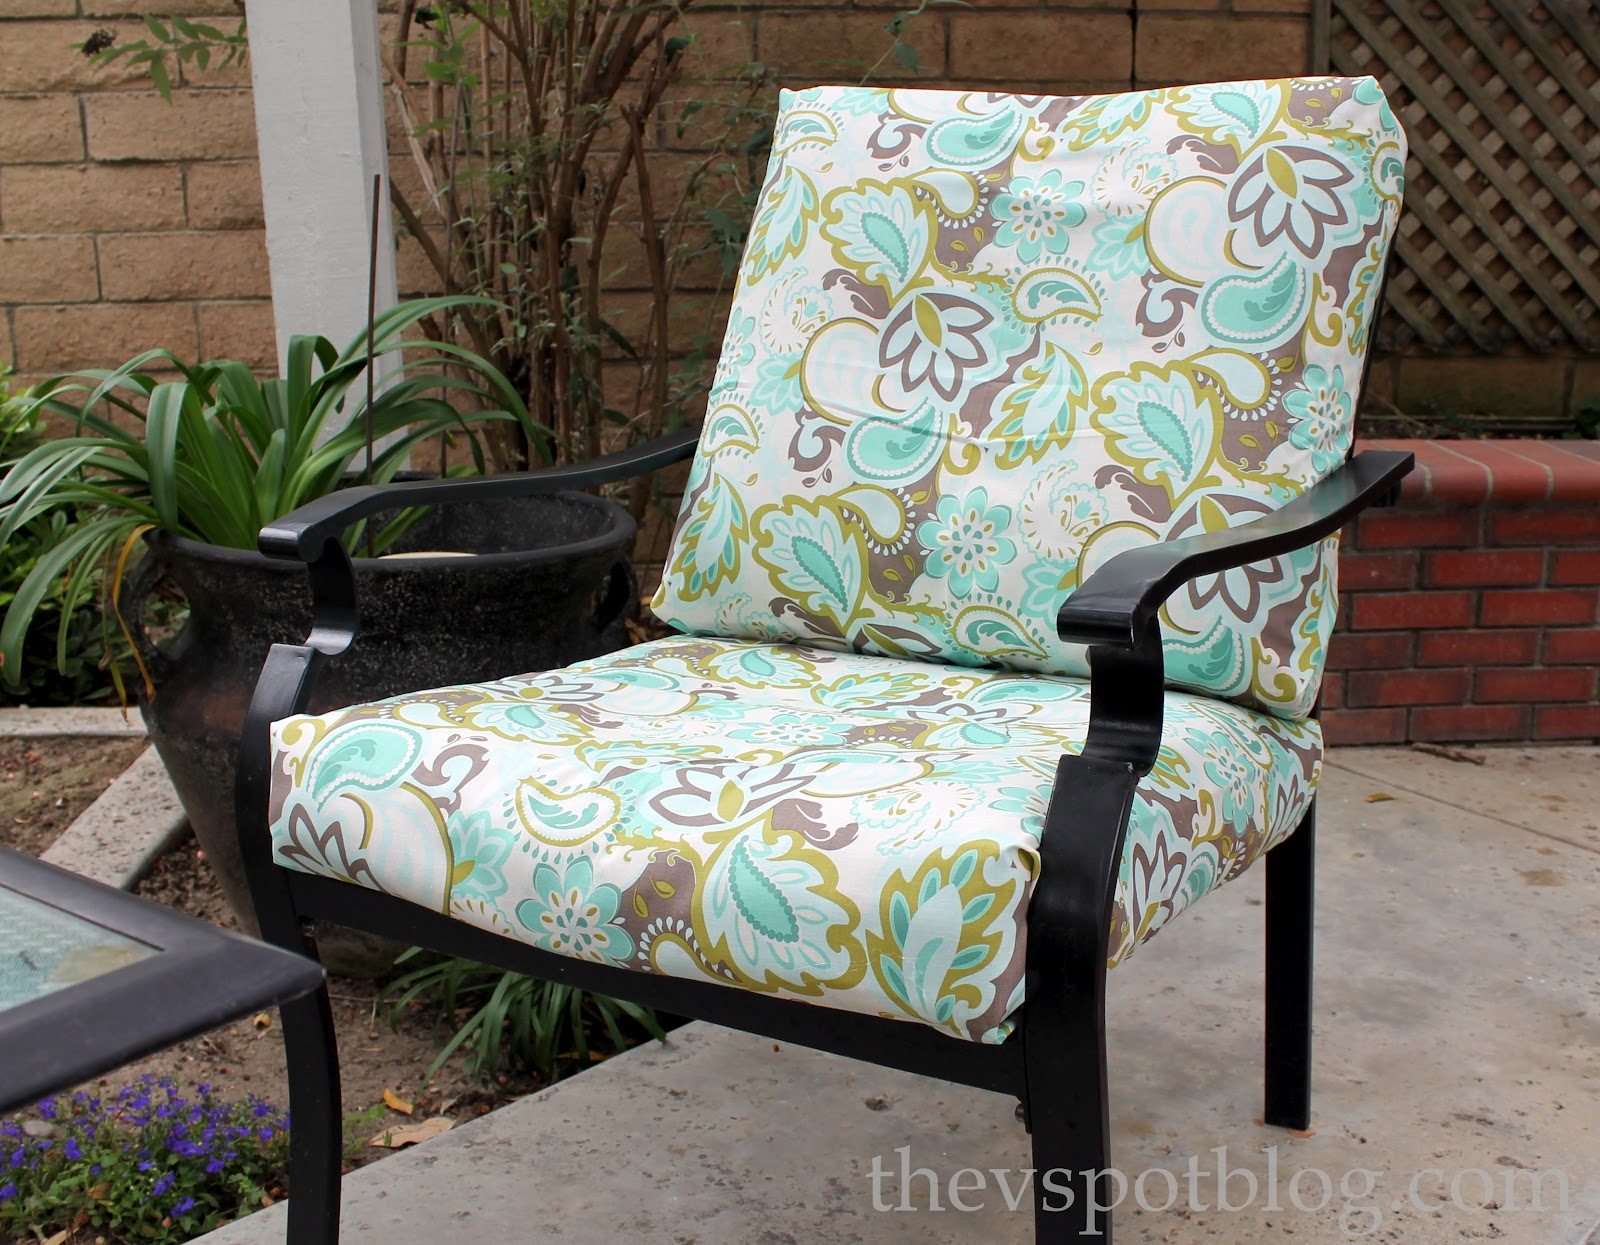 Recover Your Outdoor Cushions No Sewing Kidsncoupons